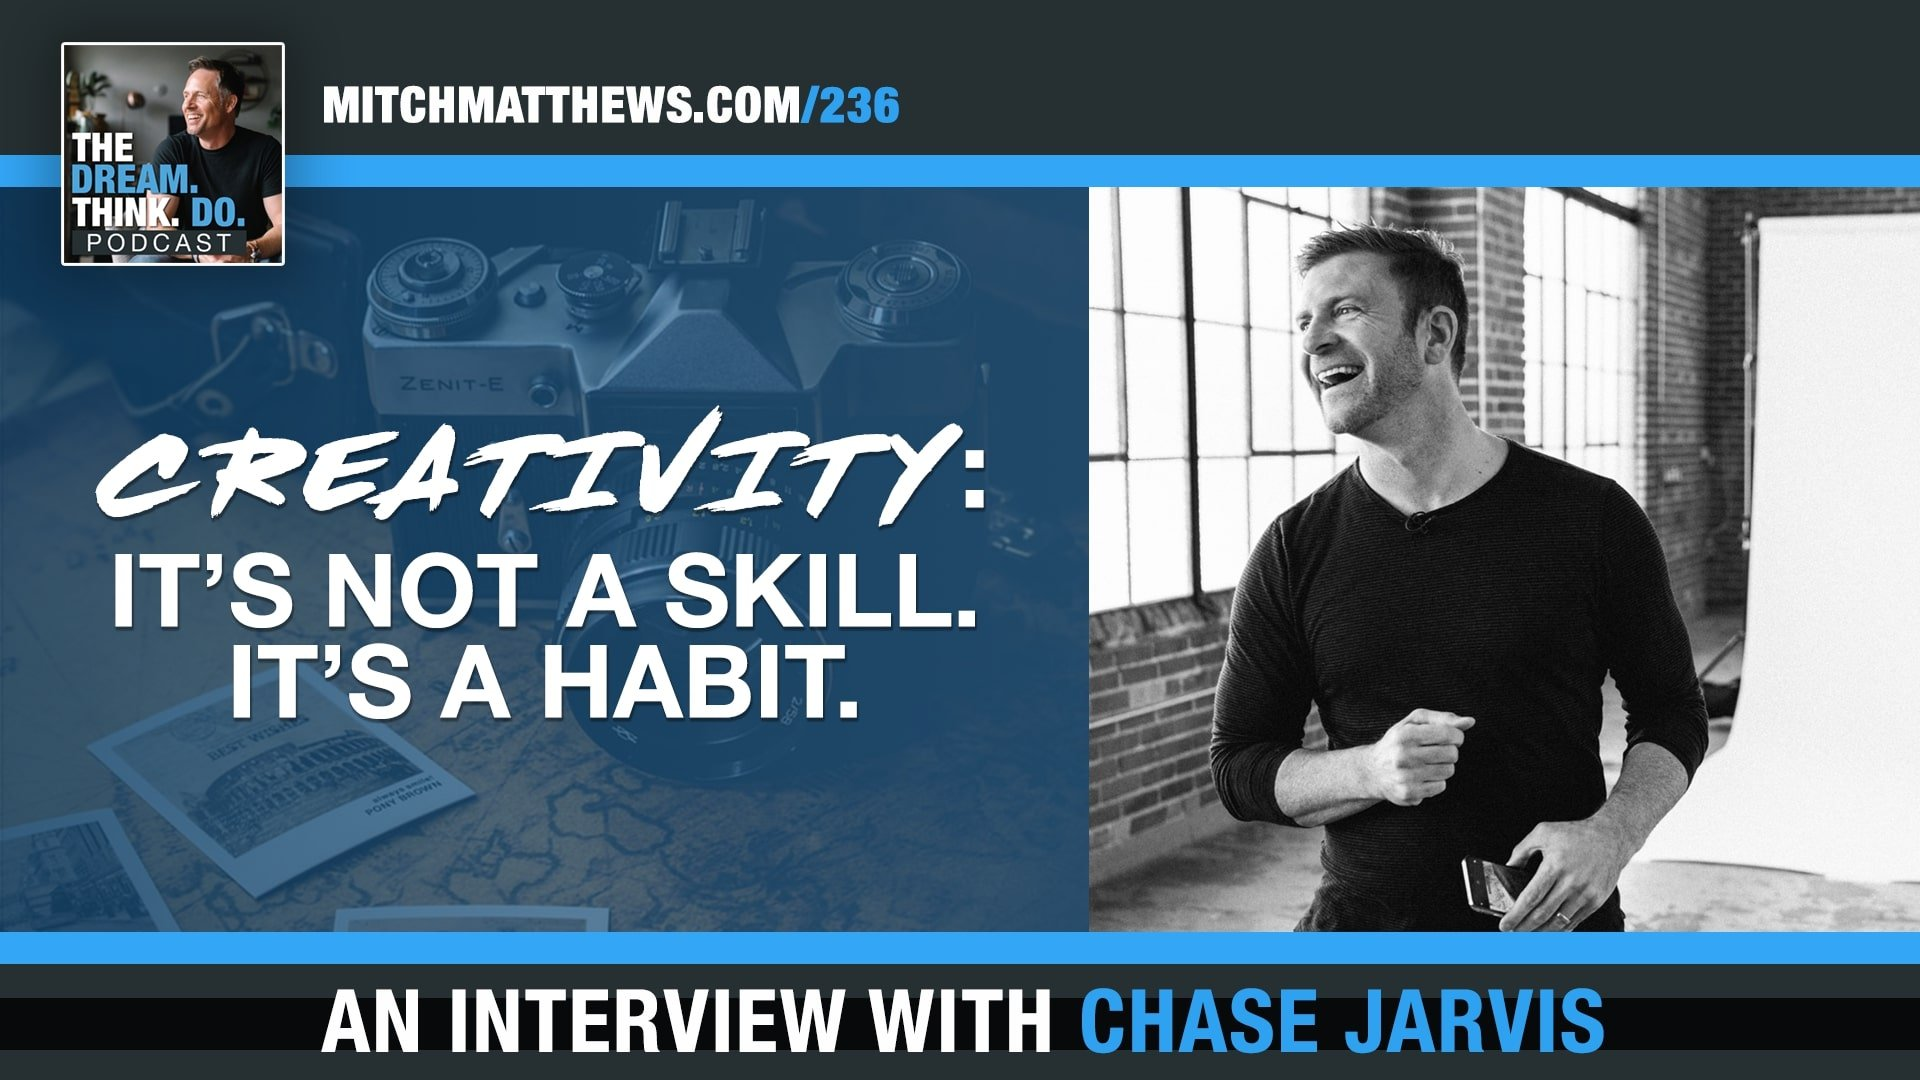 An interview with Chase Jarvis